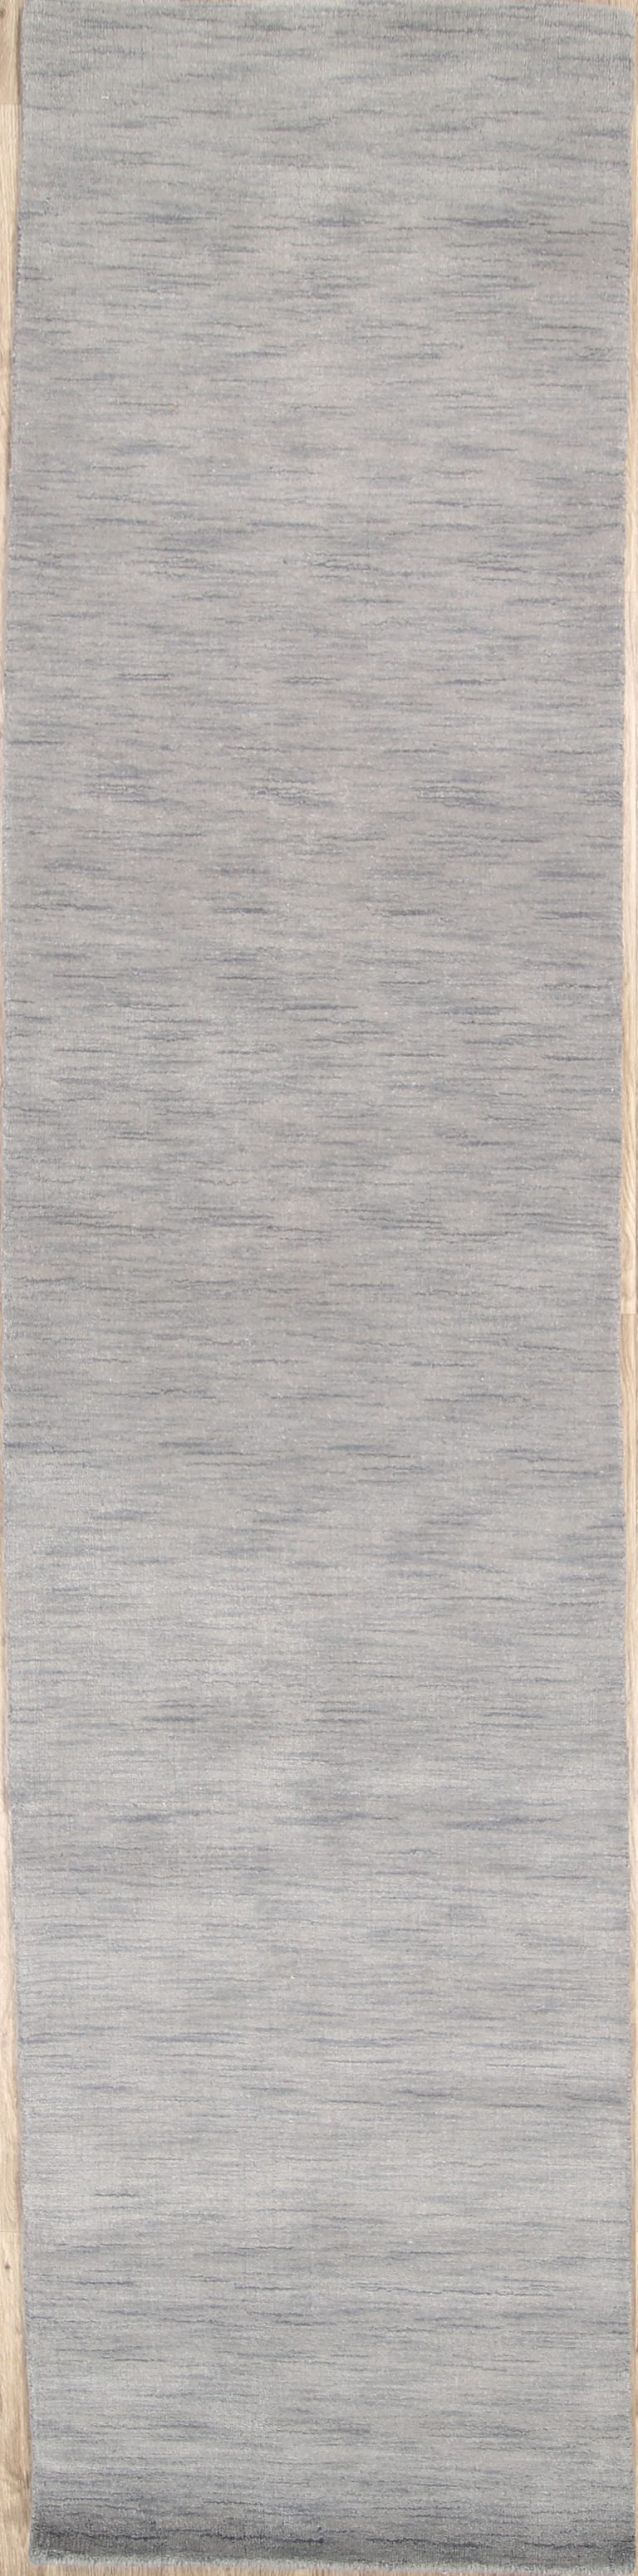 3x12 Gabbeh Indian Oriental Runner Rug